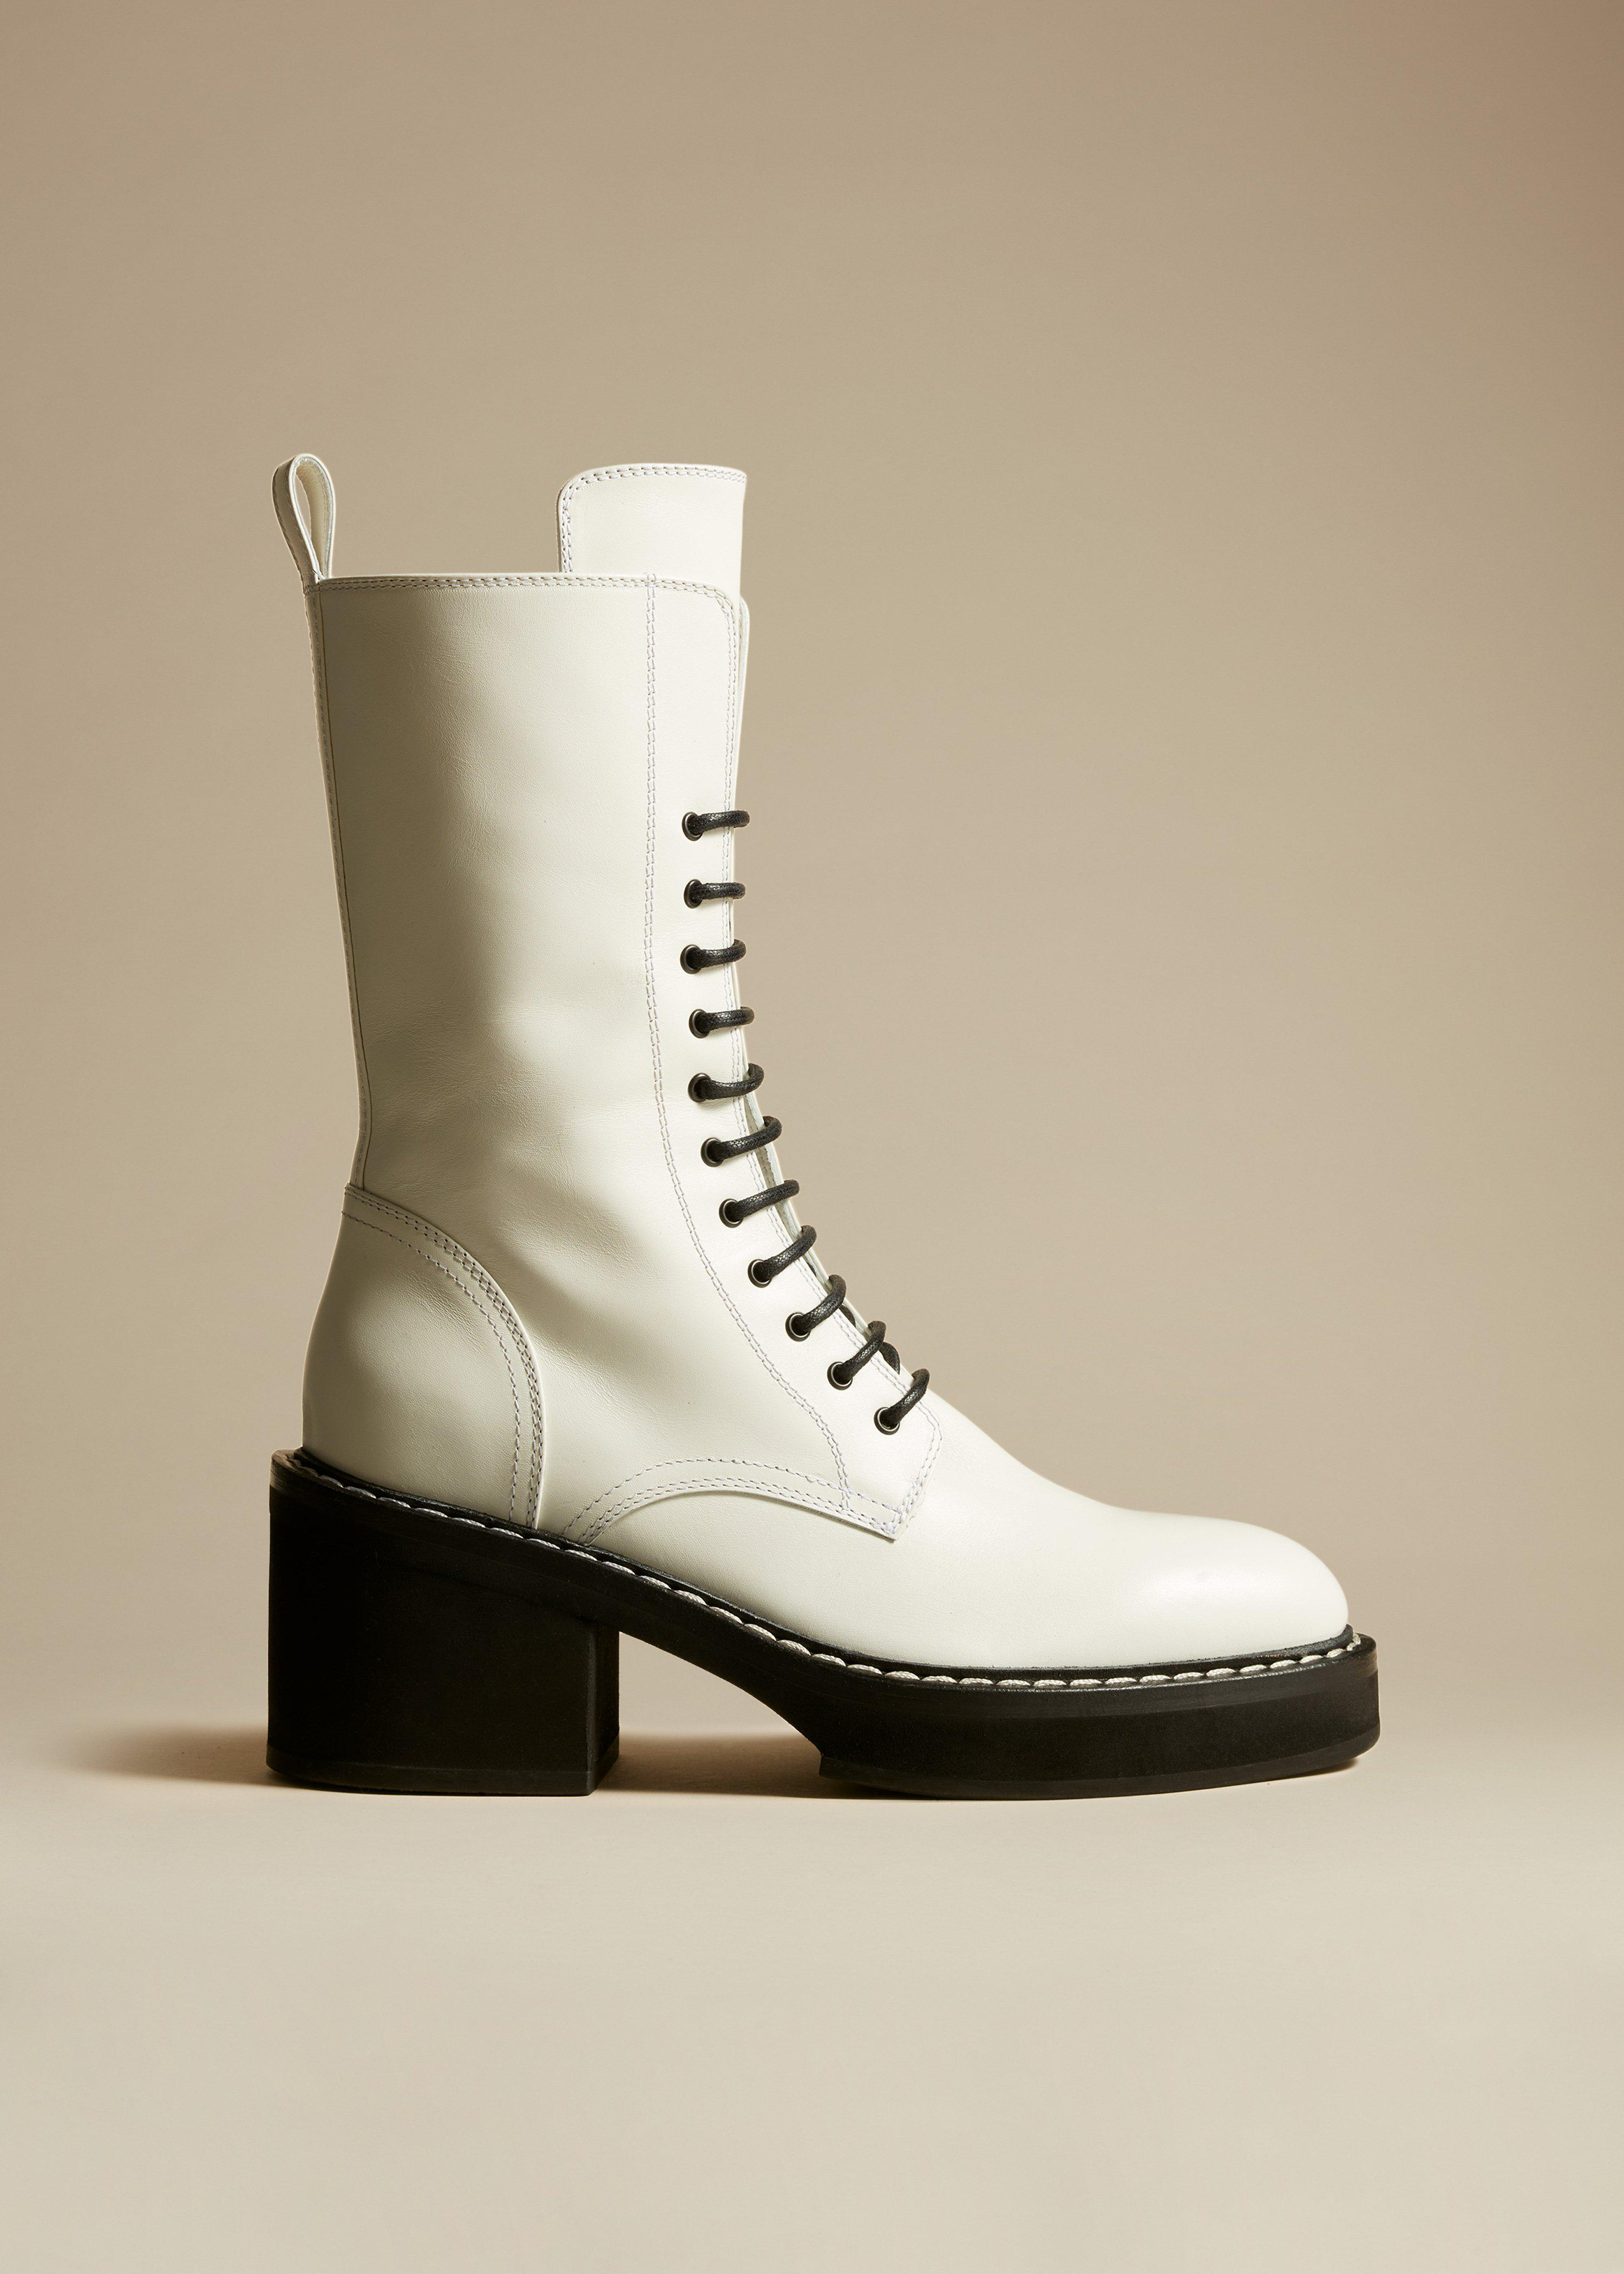 The Cody Boot in White Leather